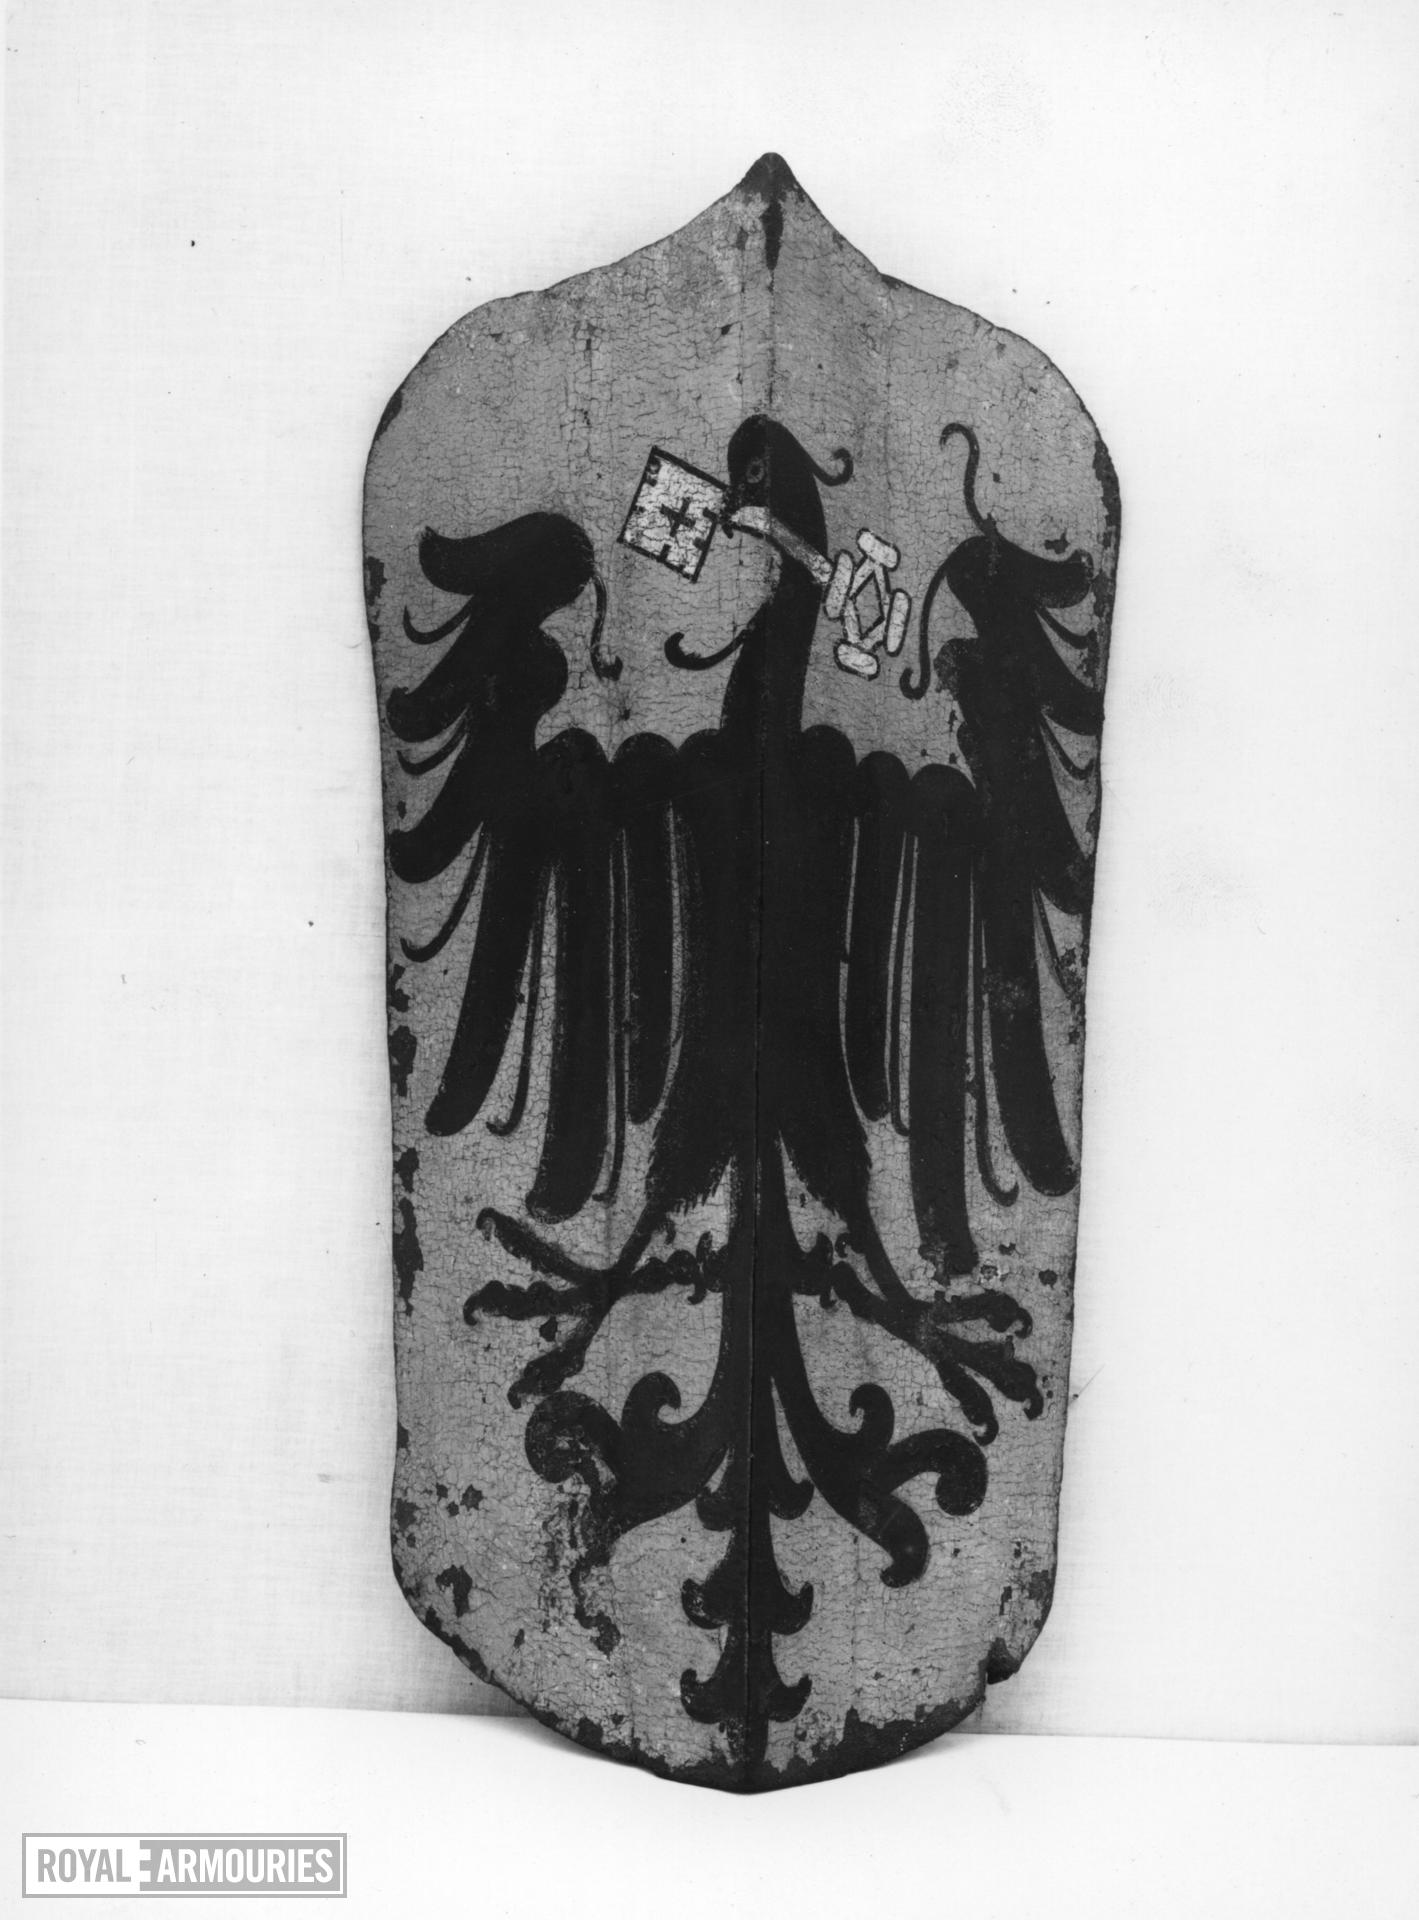 Pavise bearing the arms of Wimpfen